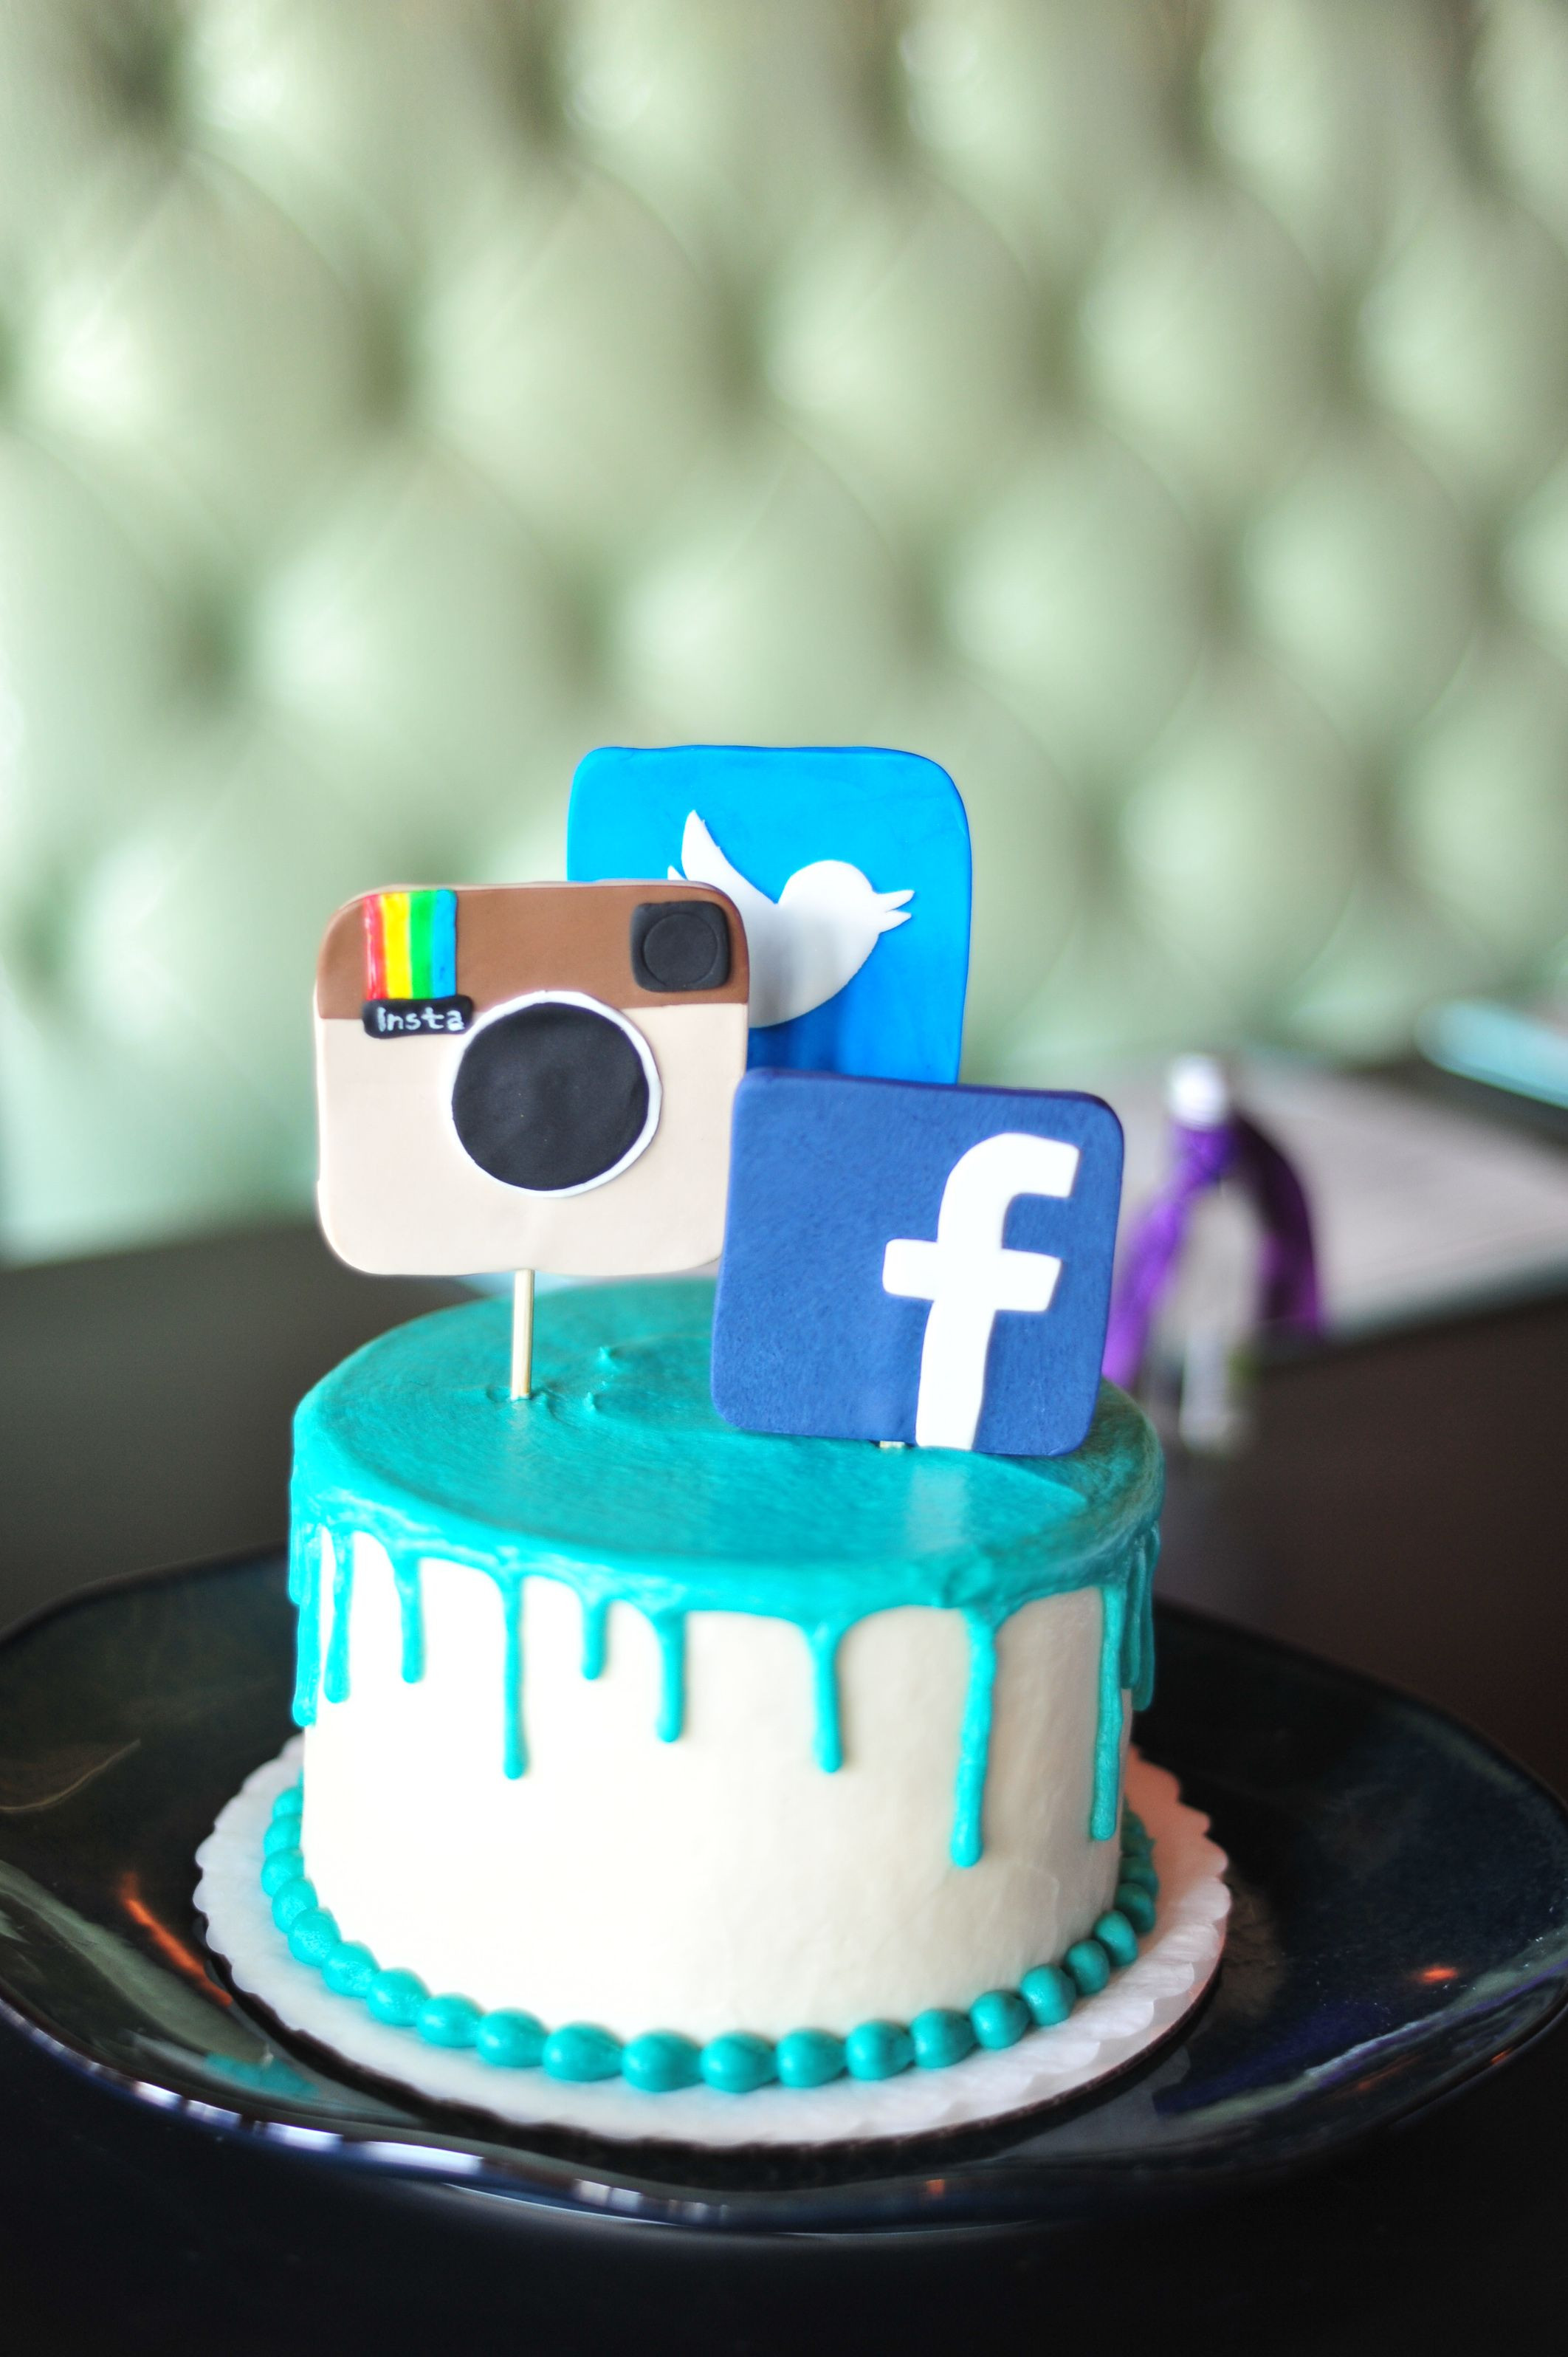 Best ideas about Facebook Birthday Cake . Save or Pin selfie cake social media cake instagram Now.